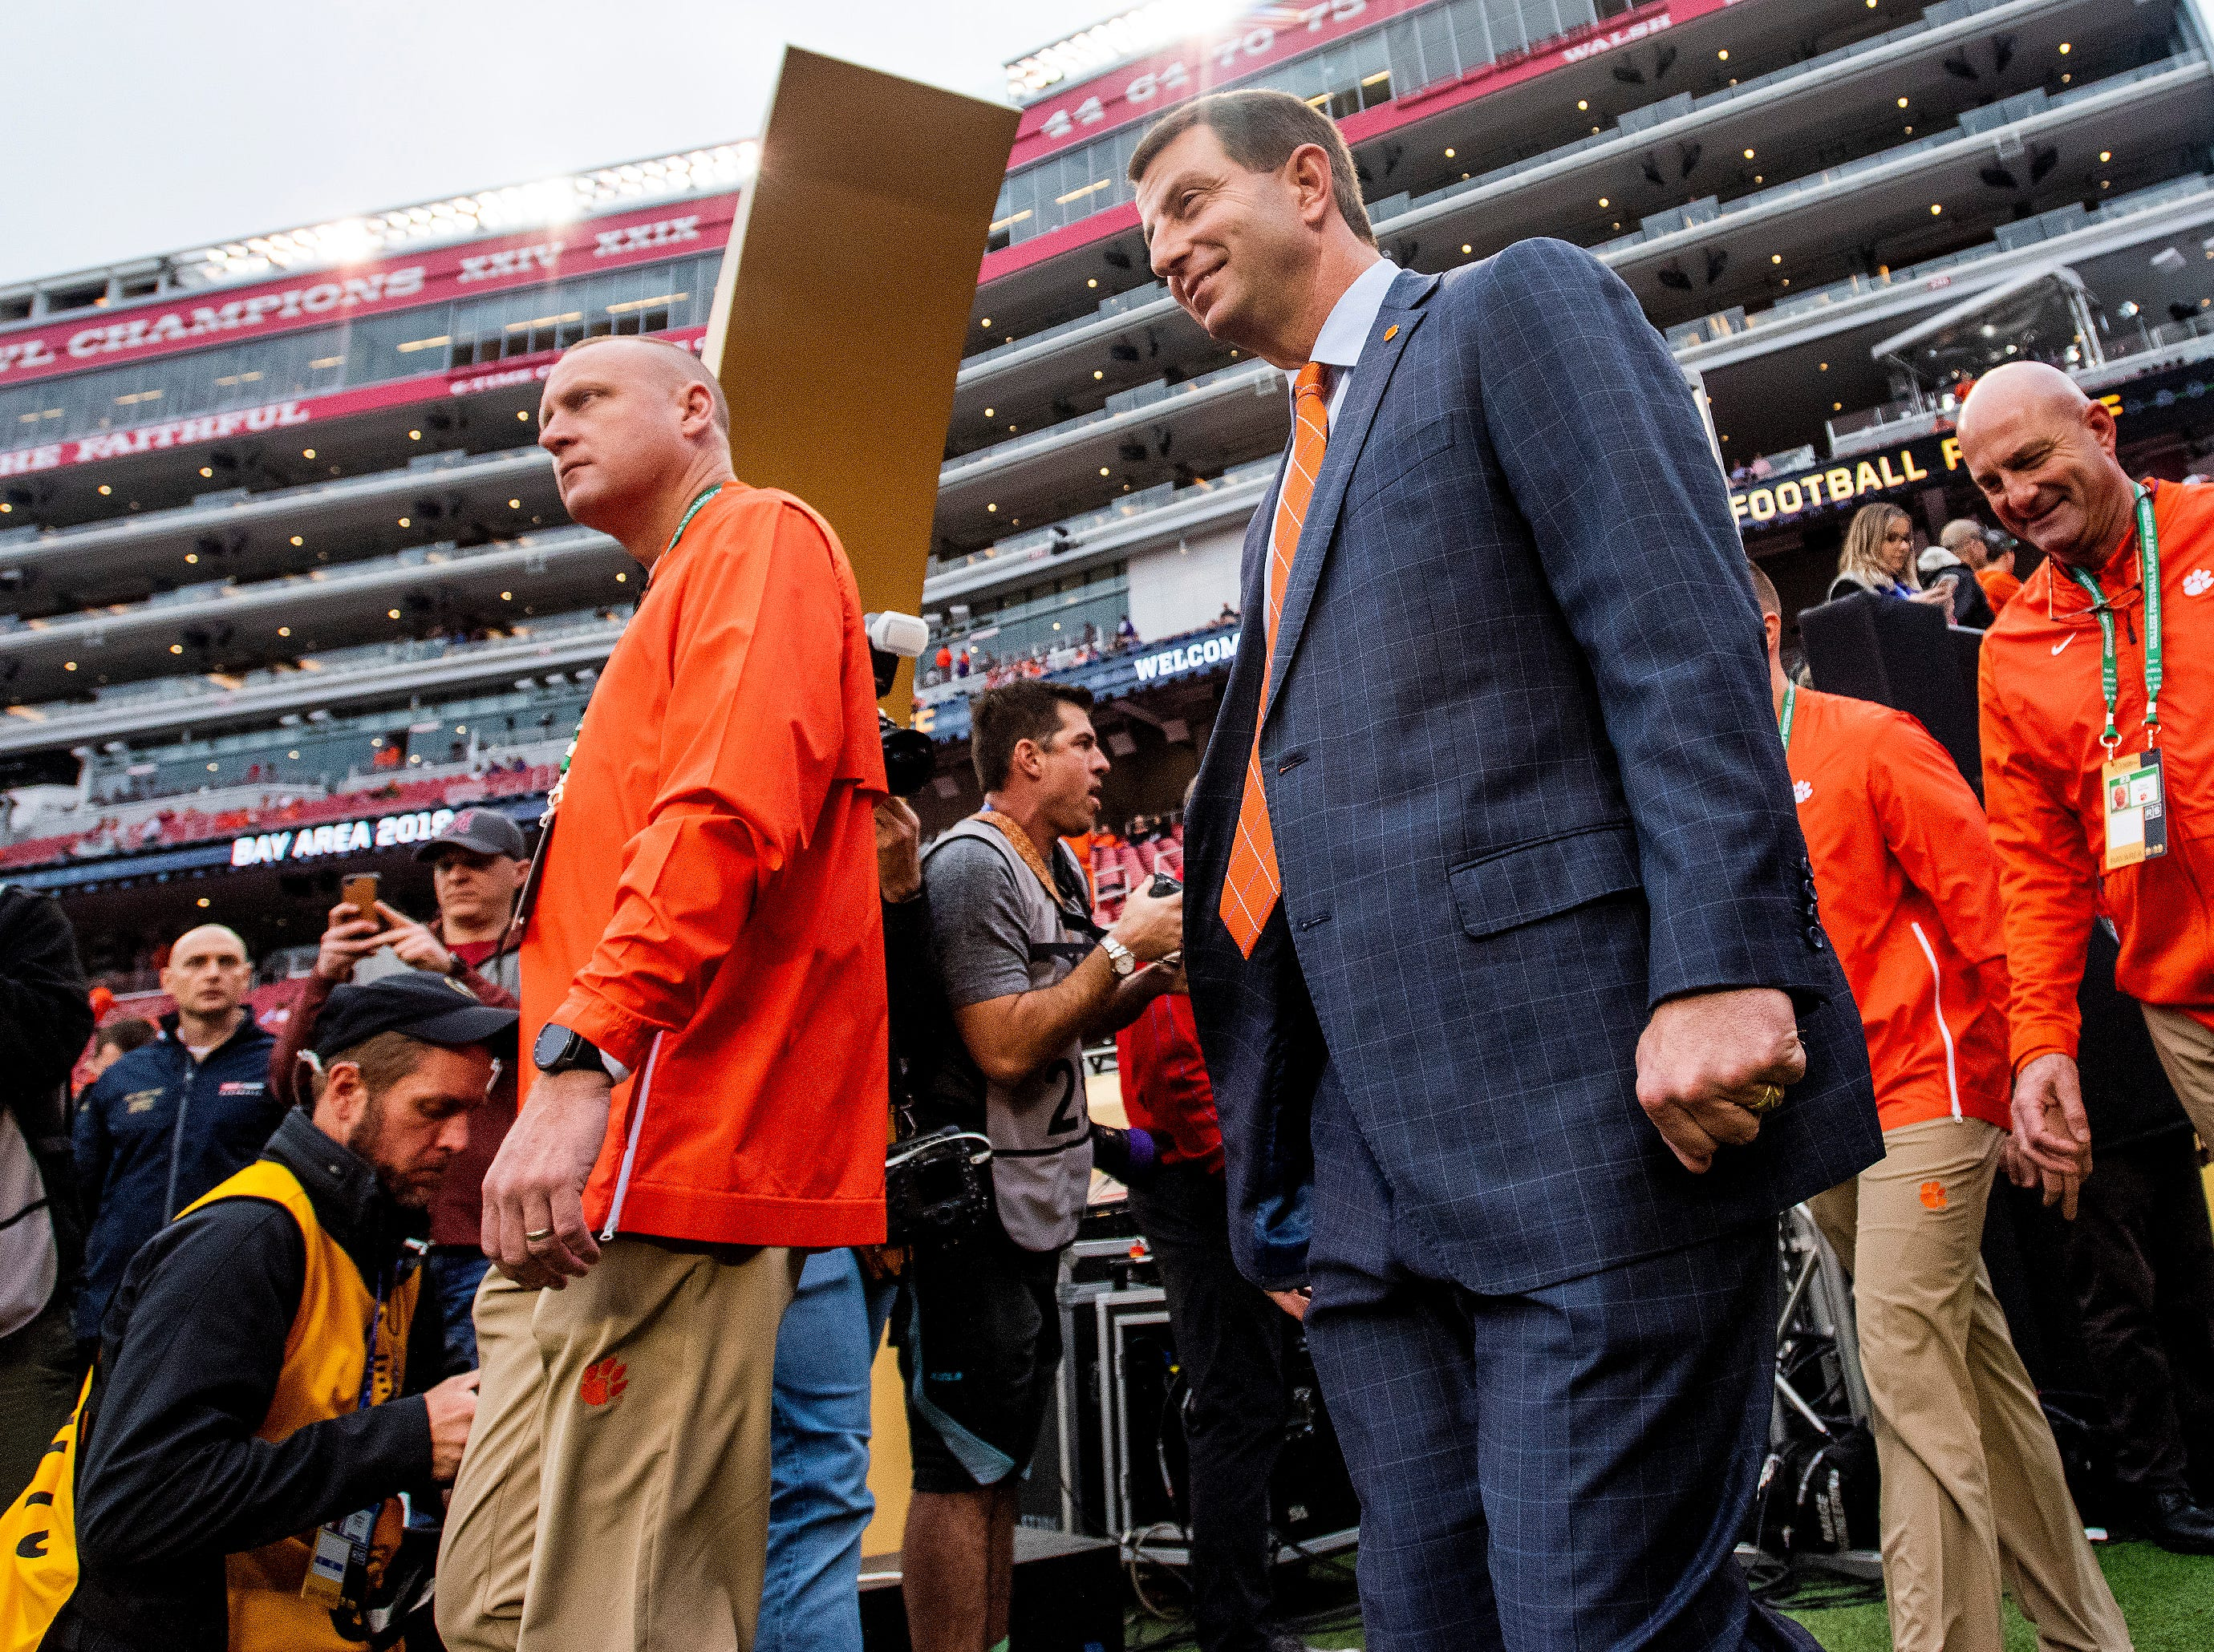 Clemson head coach Dabo Swinney walks the field as the teams arrive the College Football Playoff National Championship game at Levi's Stadium in Santa Clara, Ca., on Monday January 7, 2019.